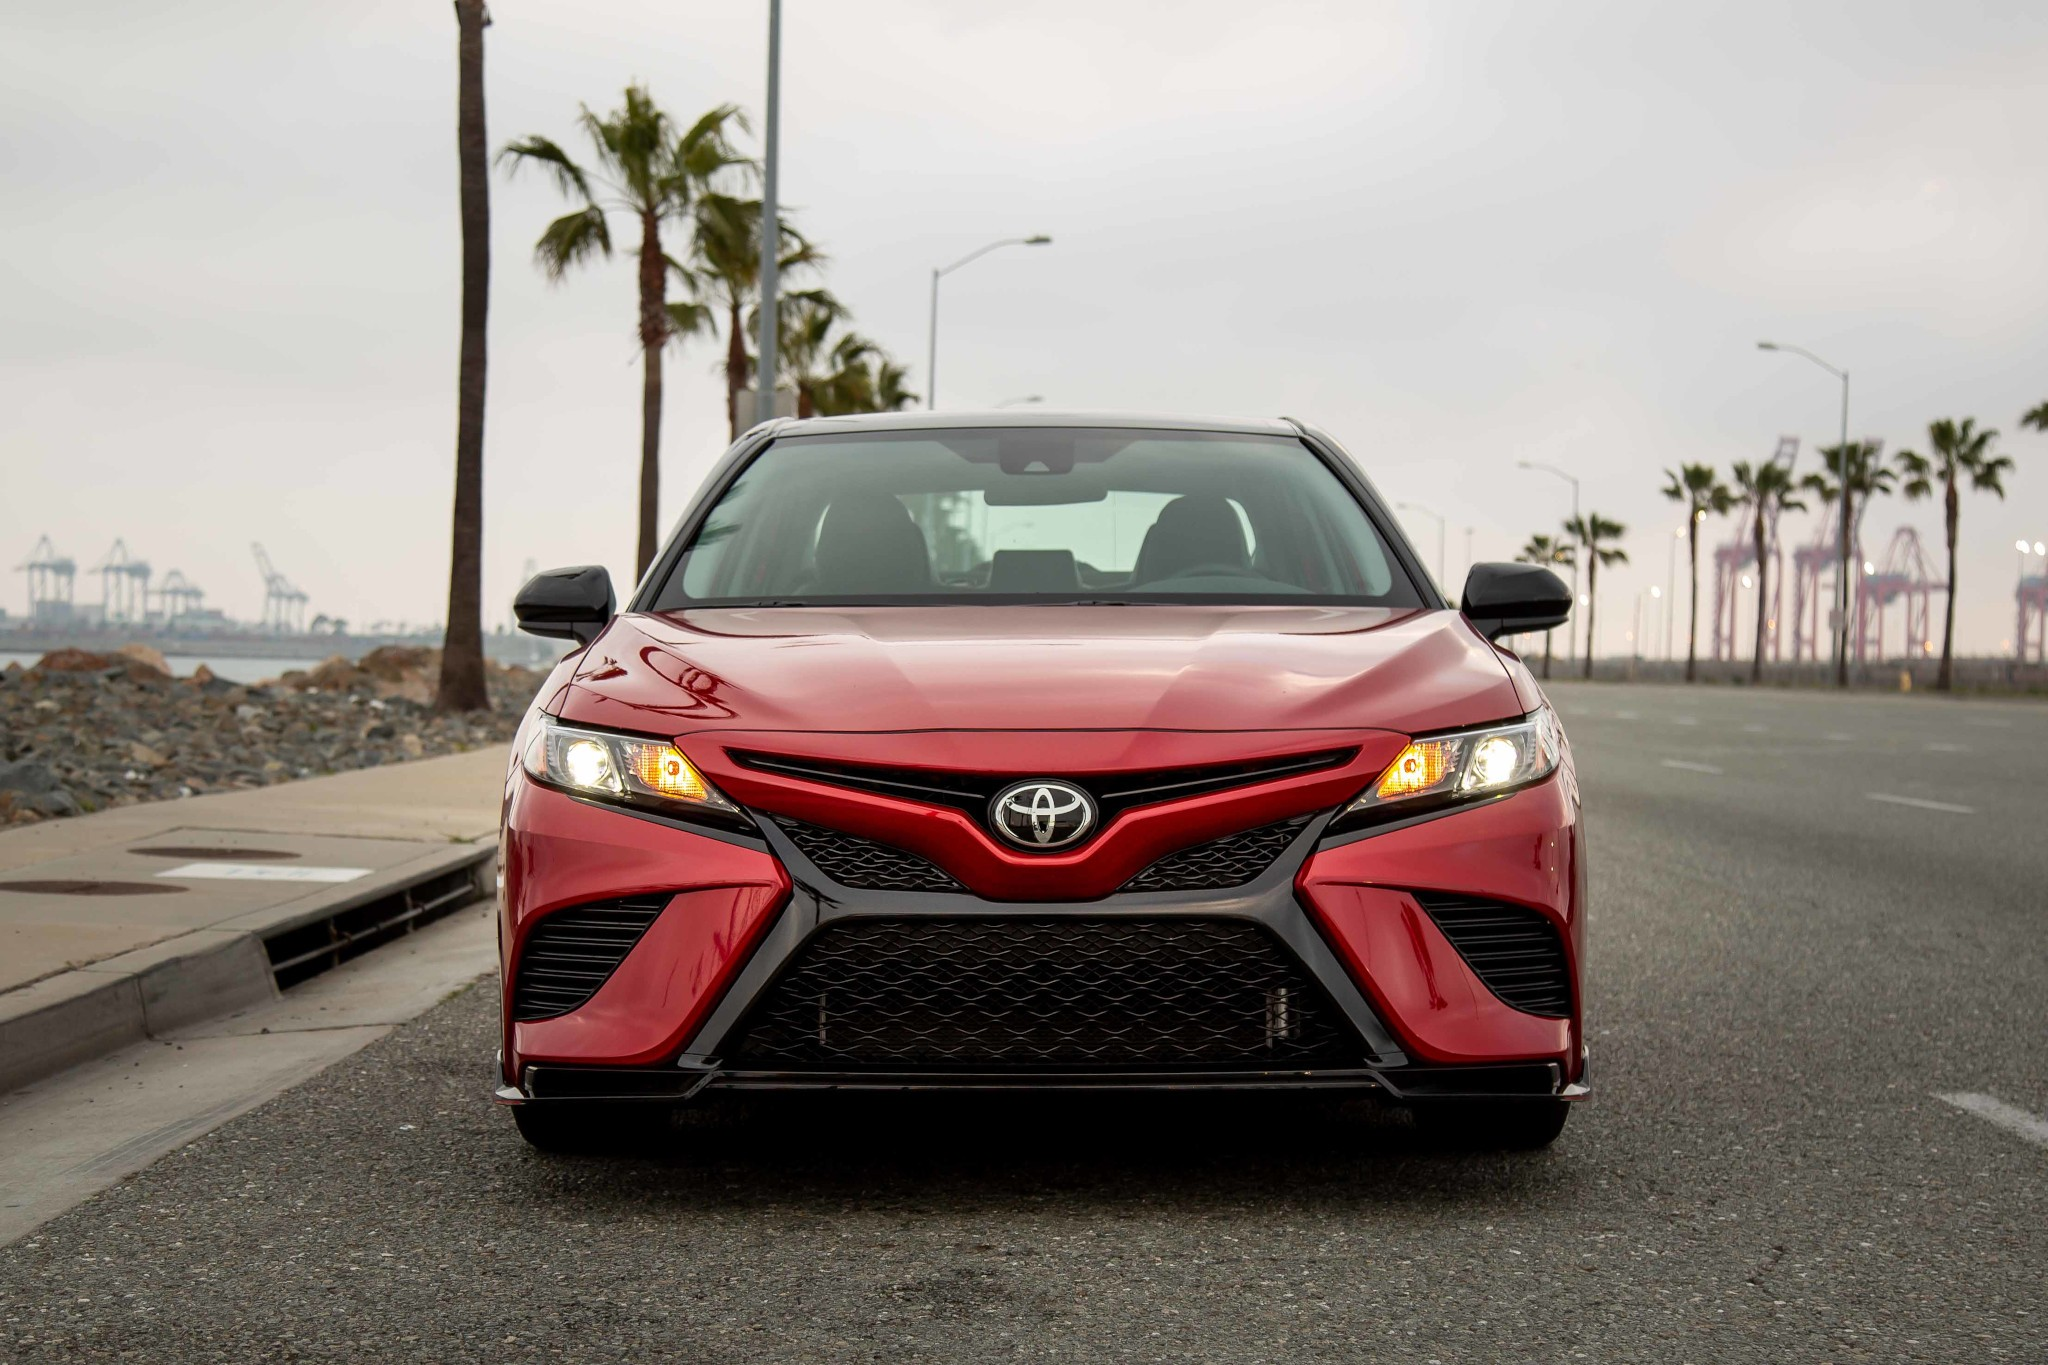 2020 Toyota Camry: What's Changed